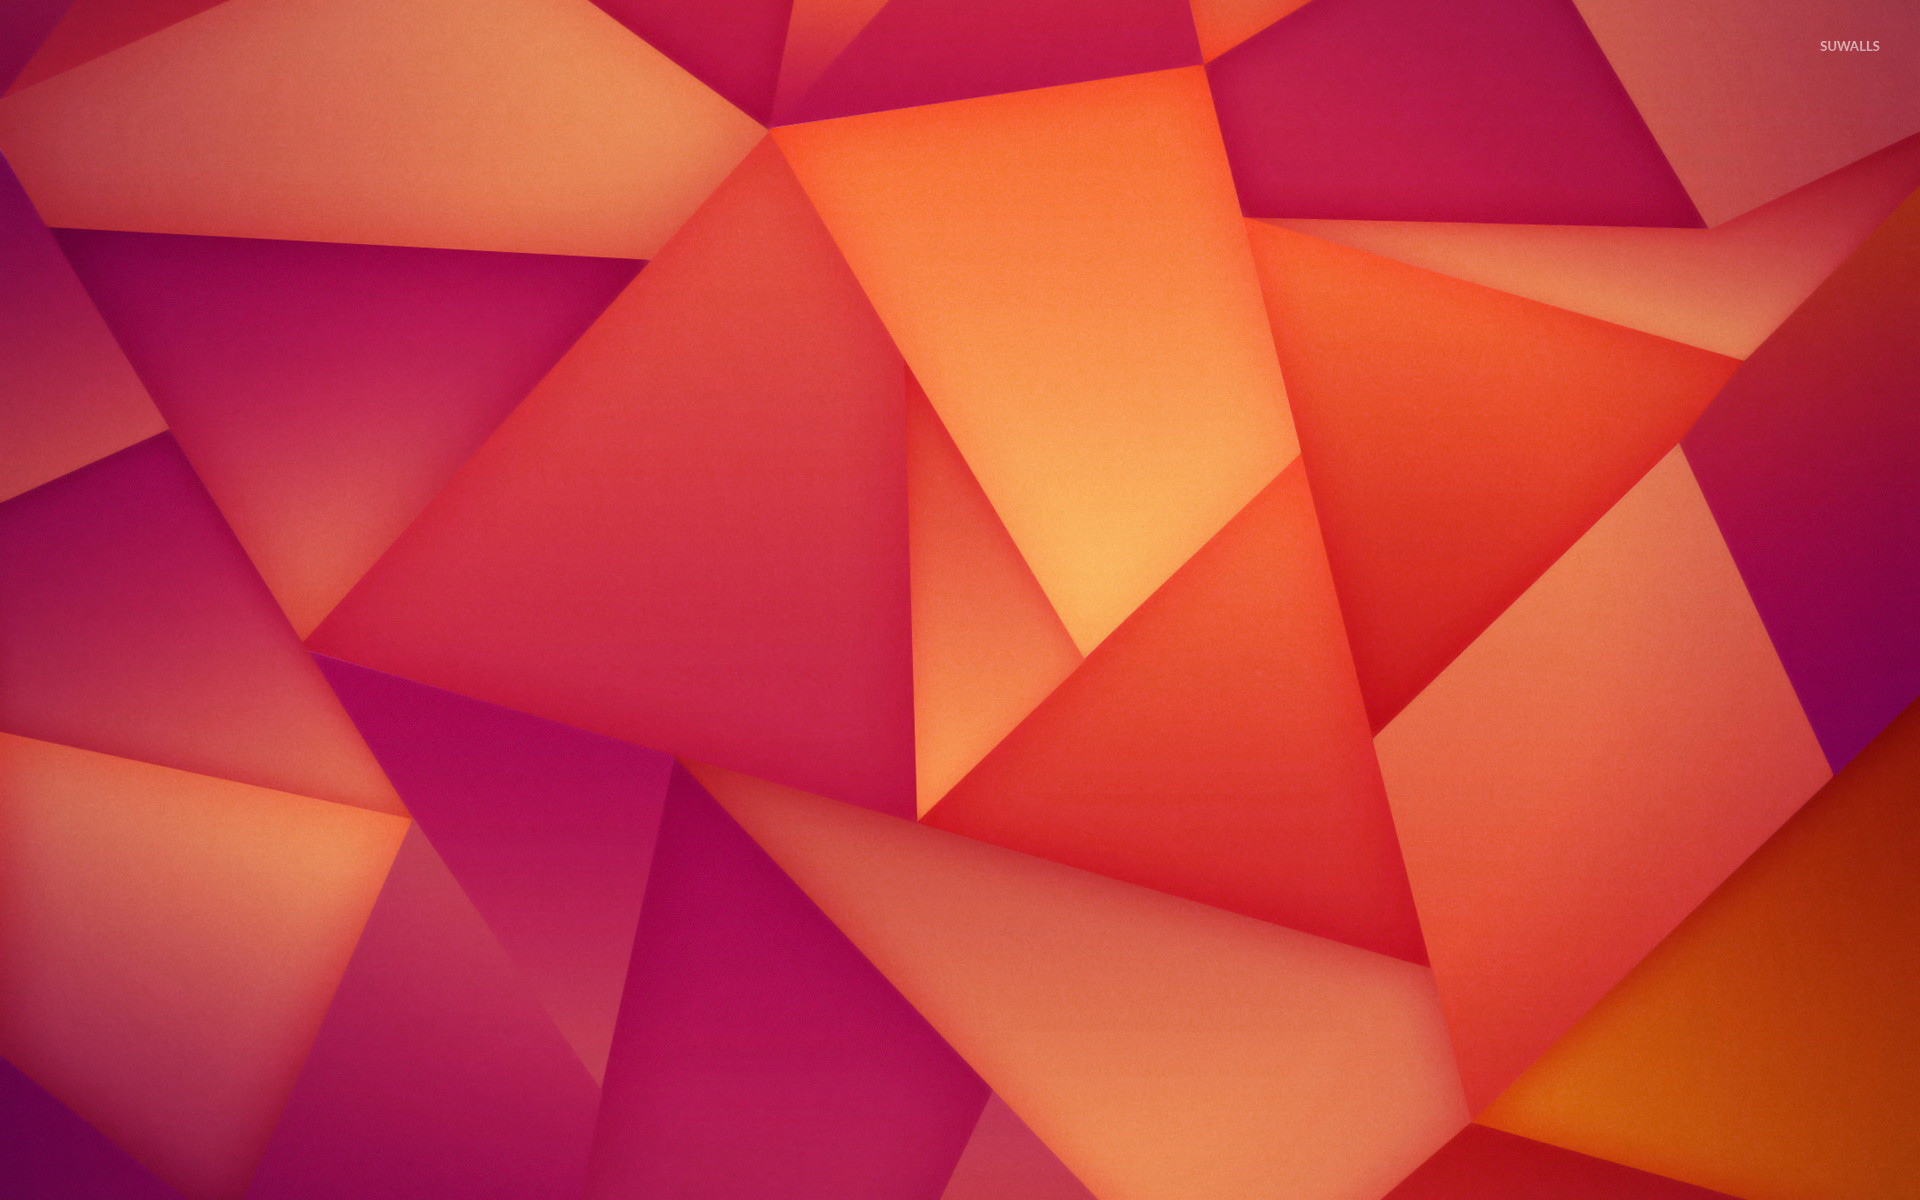 1920x1200 Orange and purple polygons wallpaper